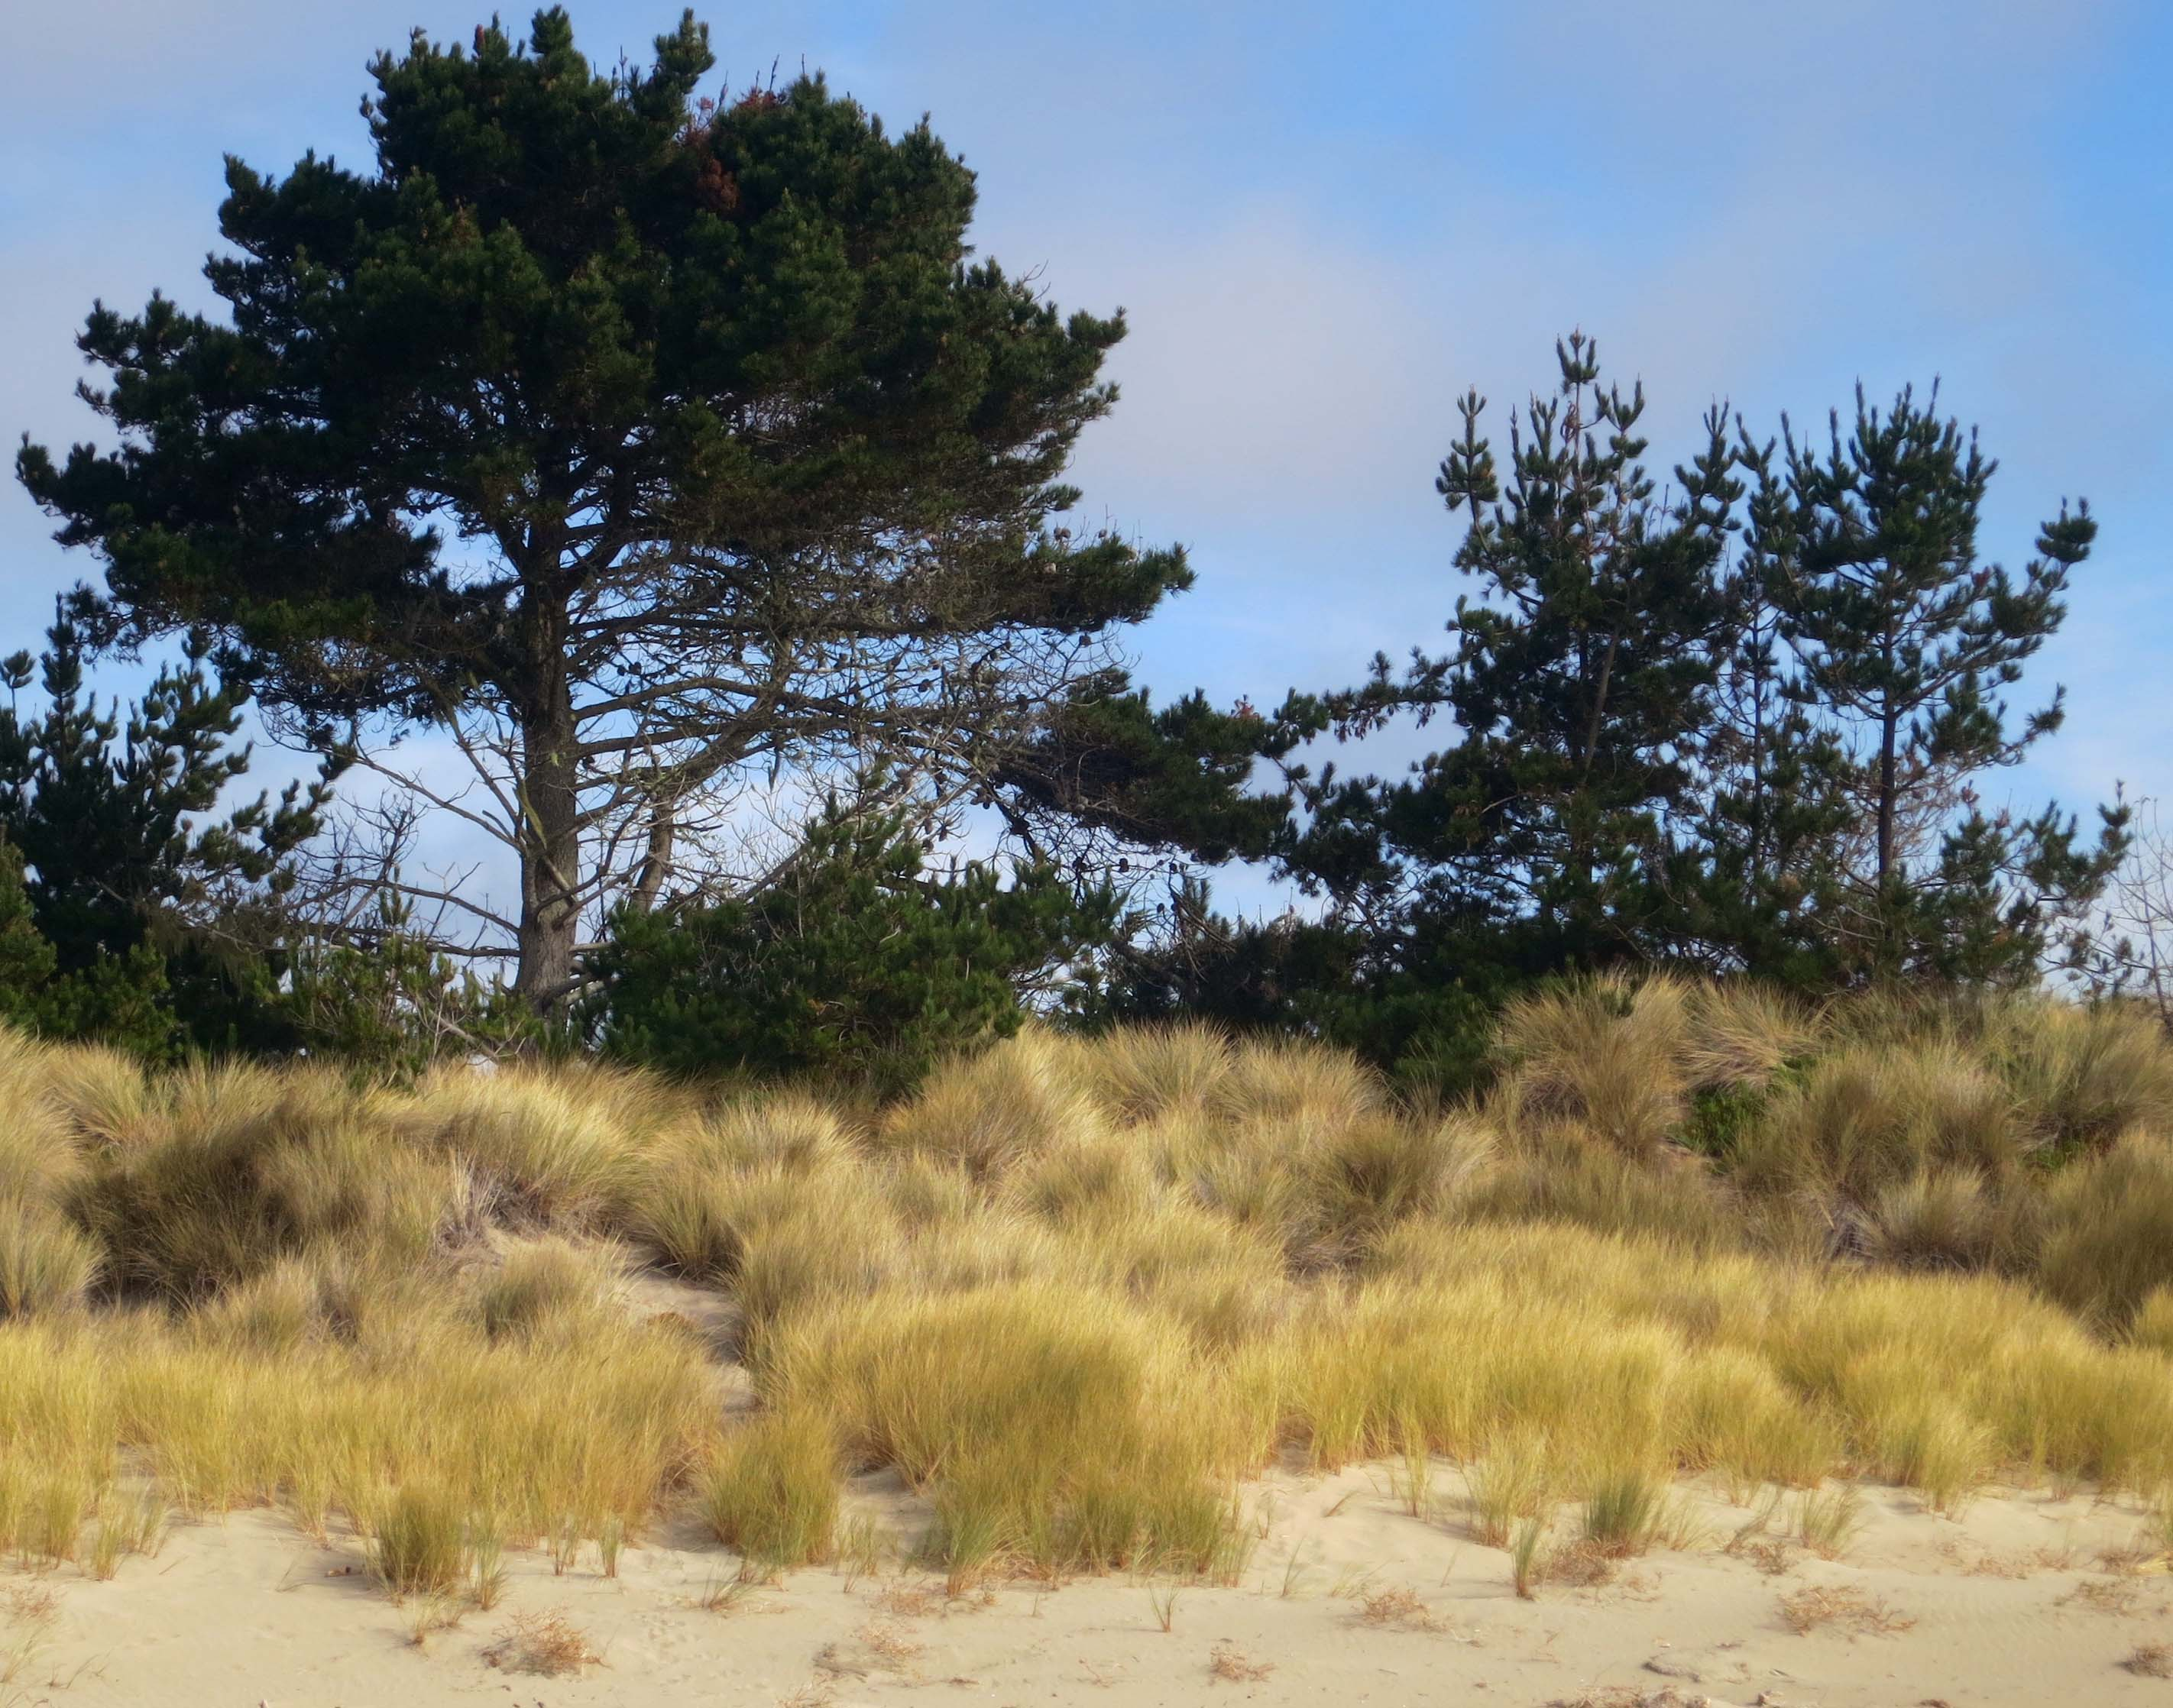 Photo of spit on Limantour Beach by Curtis Mekemson.